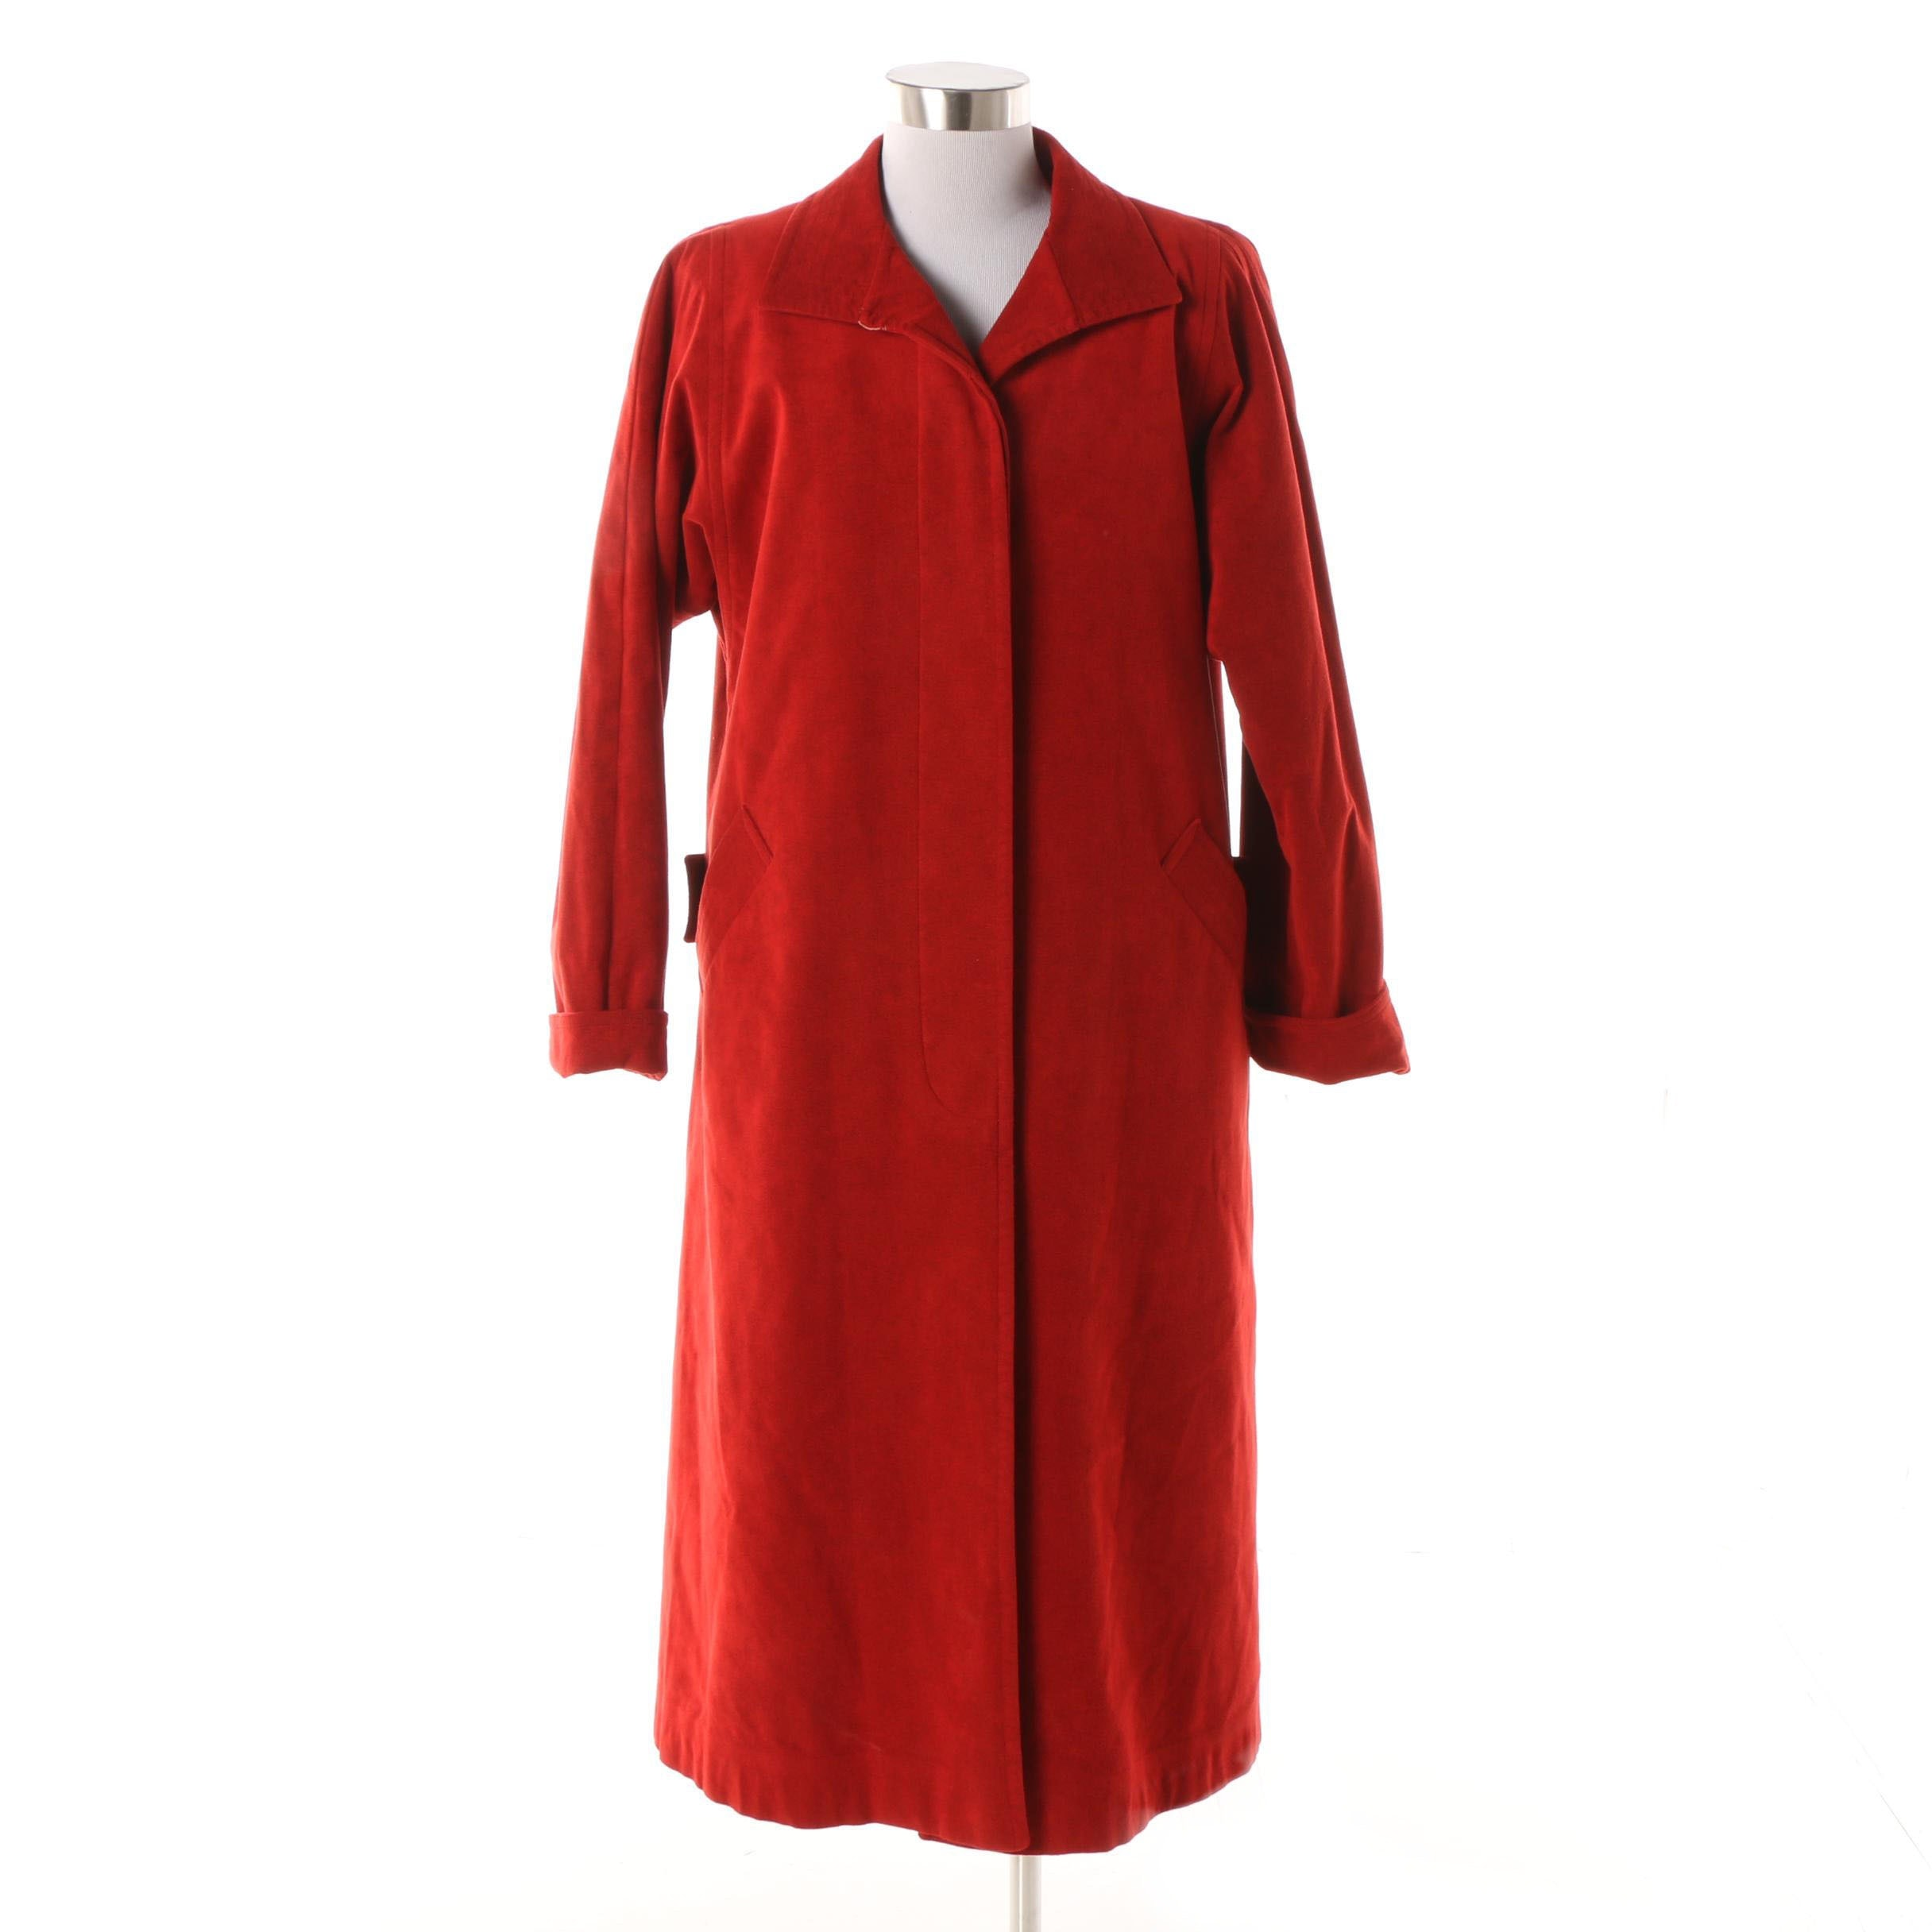 Circa 1960s Nora Zandré Red Ultrasuede Coat with Sheared Beaver Fur Lining